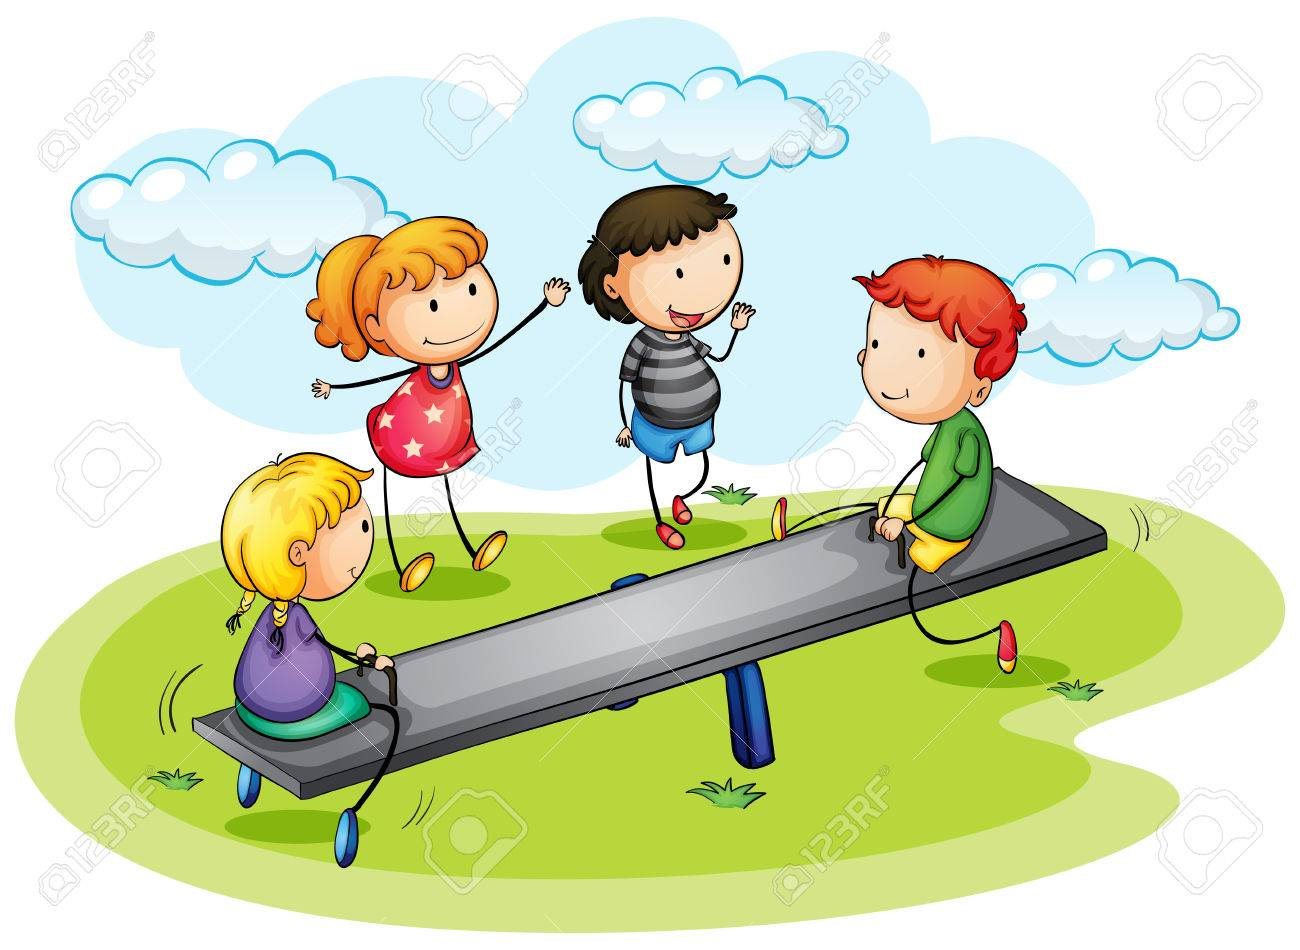 Kids playing seesaw in the park illustration.